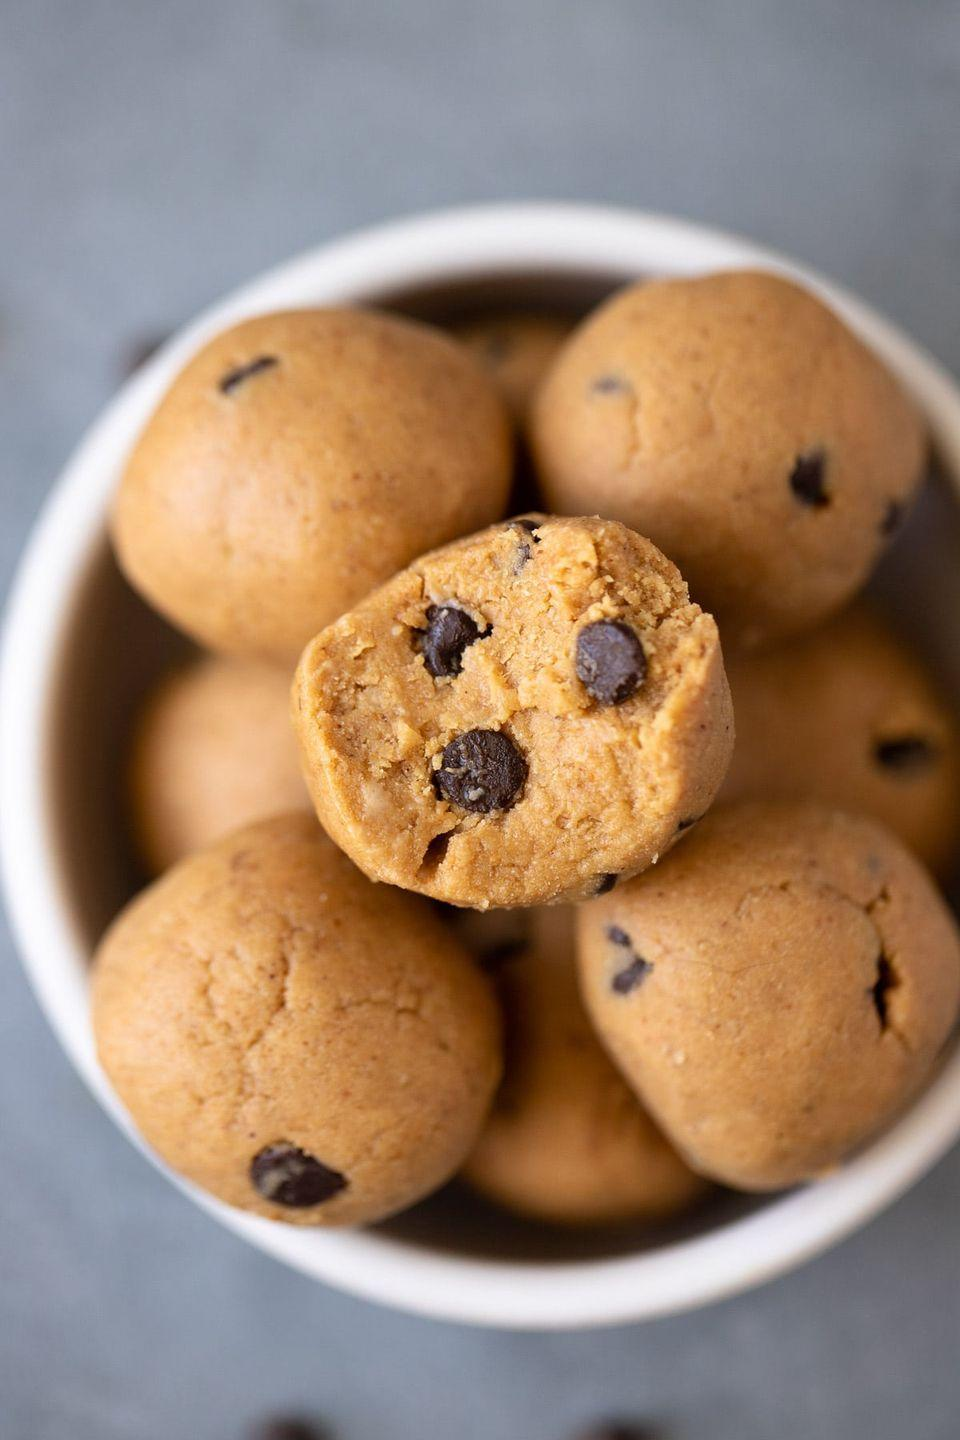 """<p>This dish reminds me of my childhood days when I'd sneak a taste of cookie dough from my mother while helping her bake. Now with this recipe, I can enjoy my cookie dough without the risks of eating uncooked eggs. </p><p>For an added energy boost, this recipe adds in protein powder— but before throwing yours in, just make sure it's vegan. </p><p><a class=""""link rapid-noclick-resp"""" href=""""https://thecleaneatingcouple.com/no-bake-protein-balls/#recipe"""" rel=""""nofollow noopener"""" target=""""_blank"""" data-ylk=""""slk:Get the recipe"""">Get the recipe </a></p><p><em>Per one serving: 72 cal, 4 g fat, (1 g saturated fat), 5 g carbs, 3 g sugar, 42 mg sodium, 1 g fiber, 4 g protein</em></p>"""